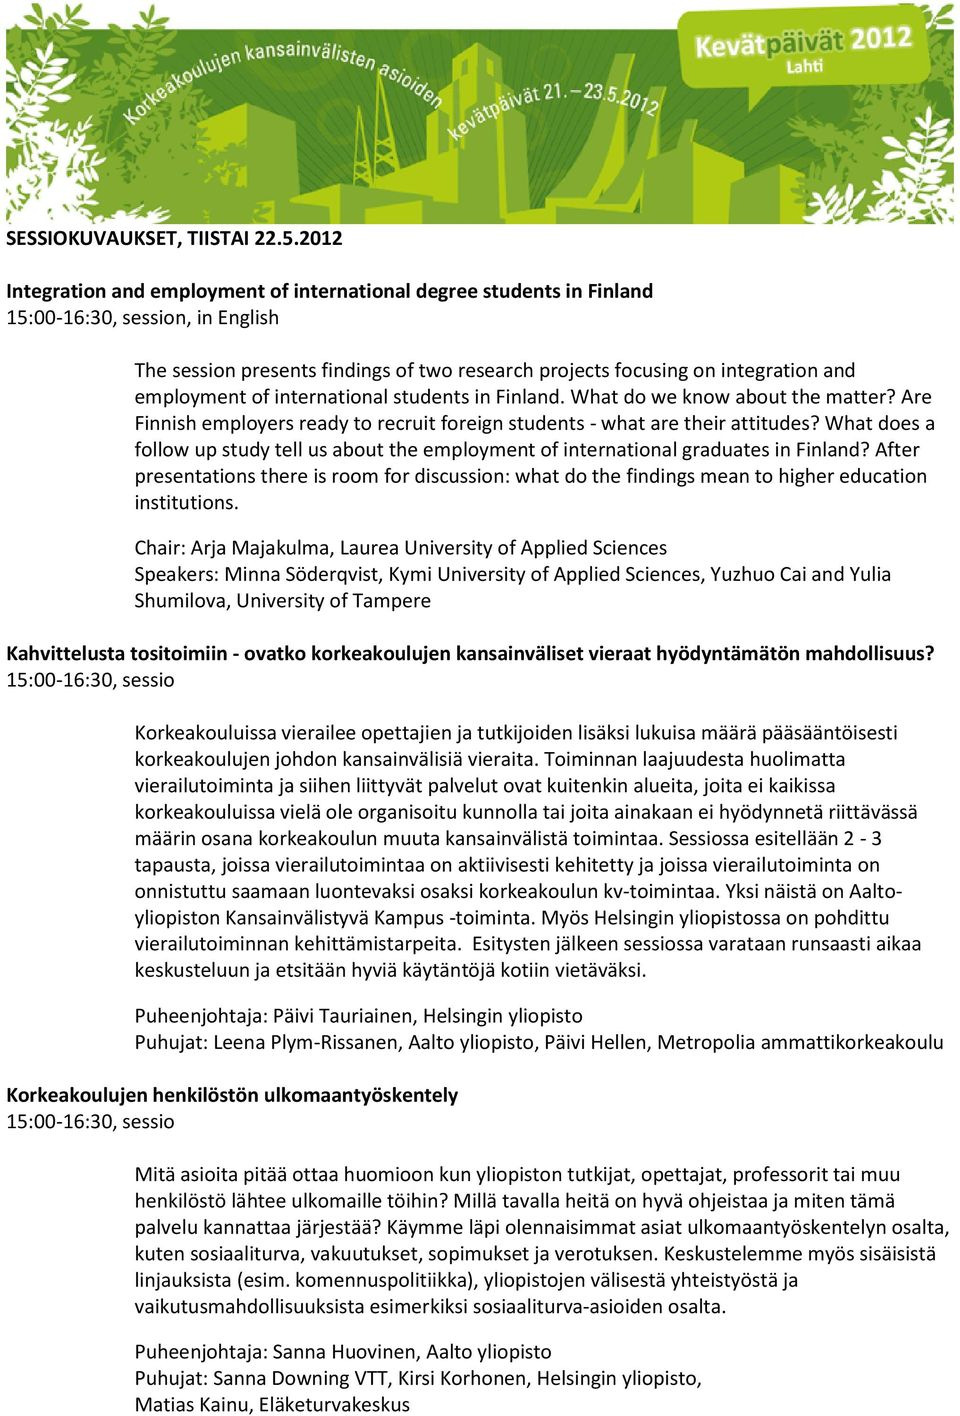 What does a follow up study tell us about the employment of international graduates in Finland?